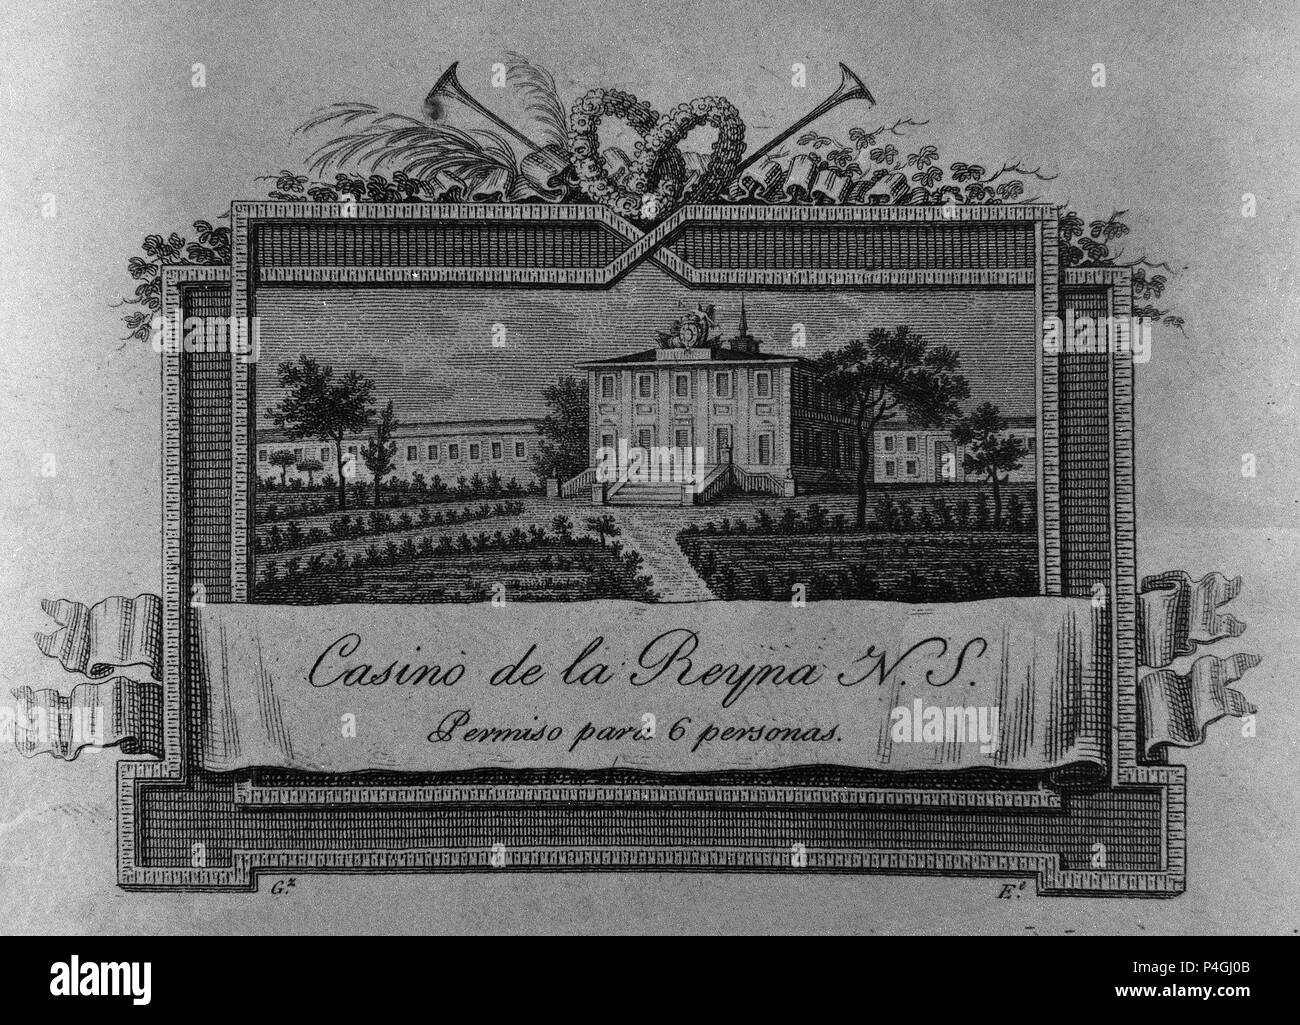 Negro hut stock photos negro hut stock images alamy for Casa de campo la reina